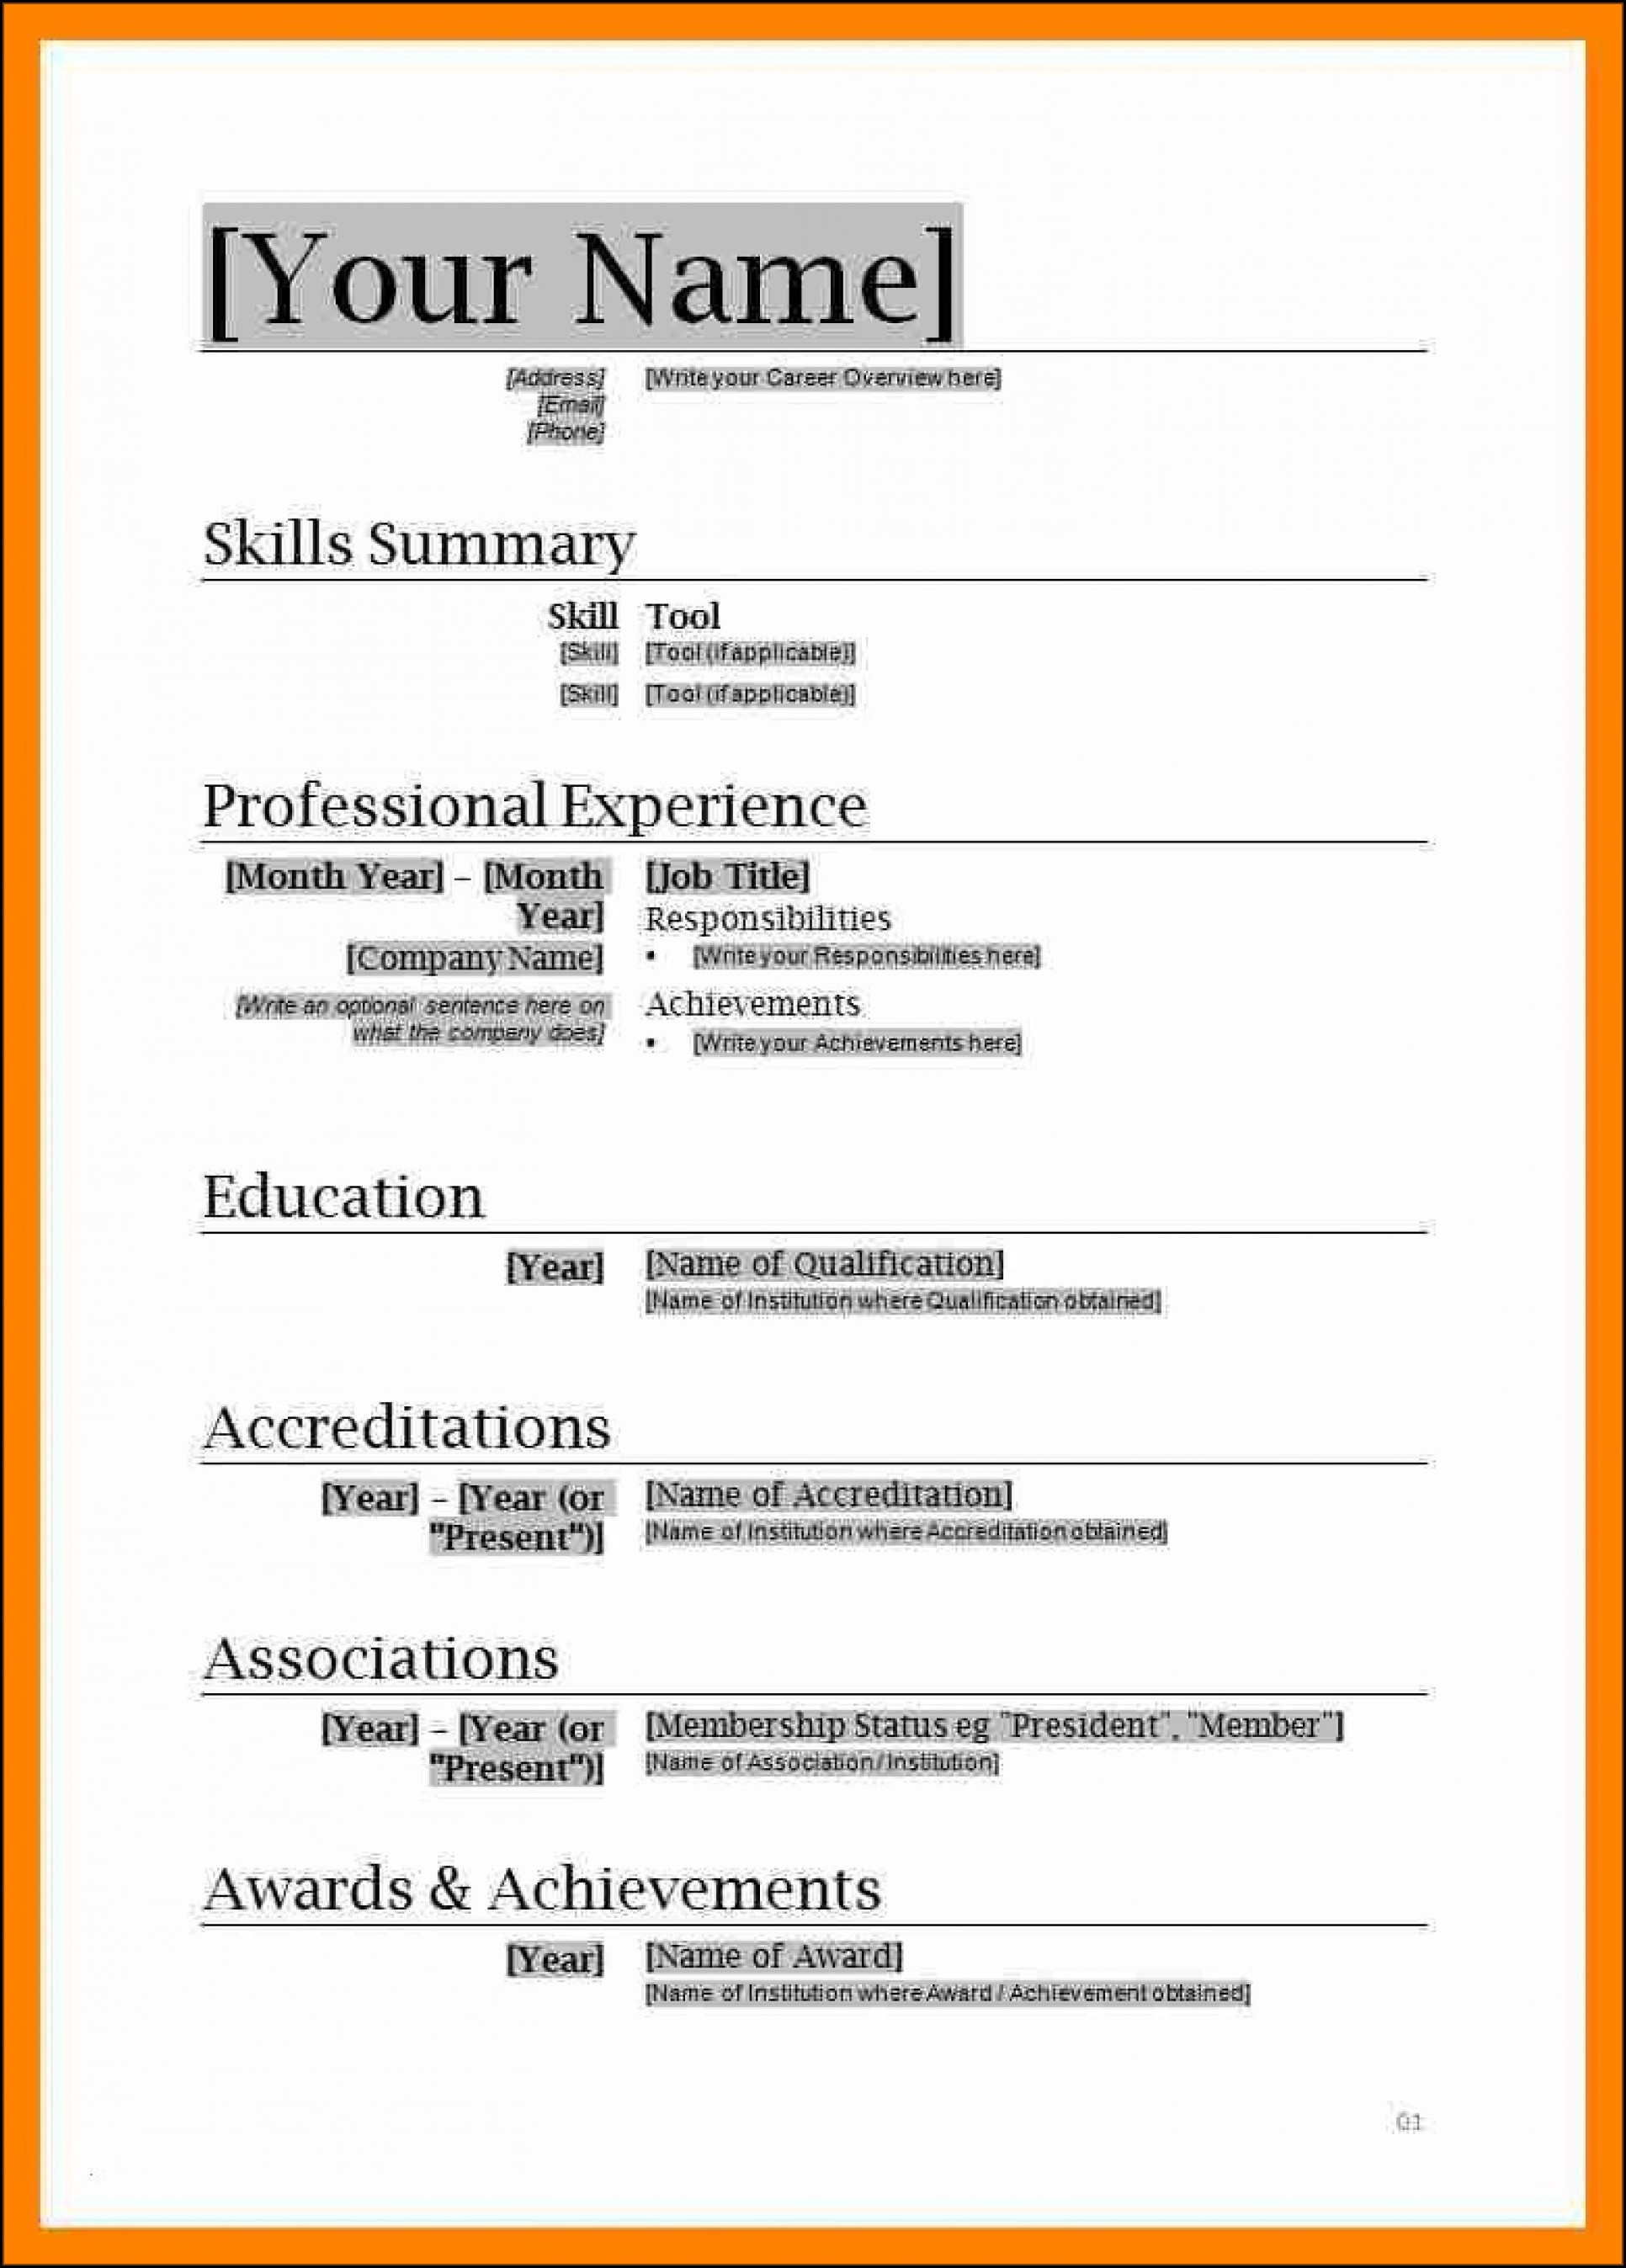 Free Resume Format Download In Ms Word 2007